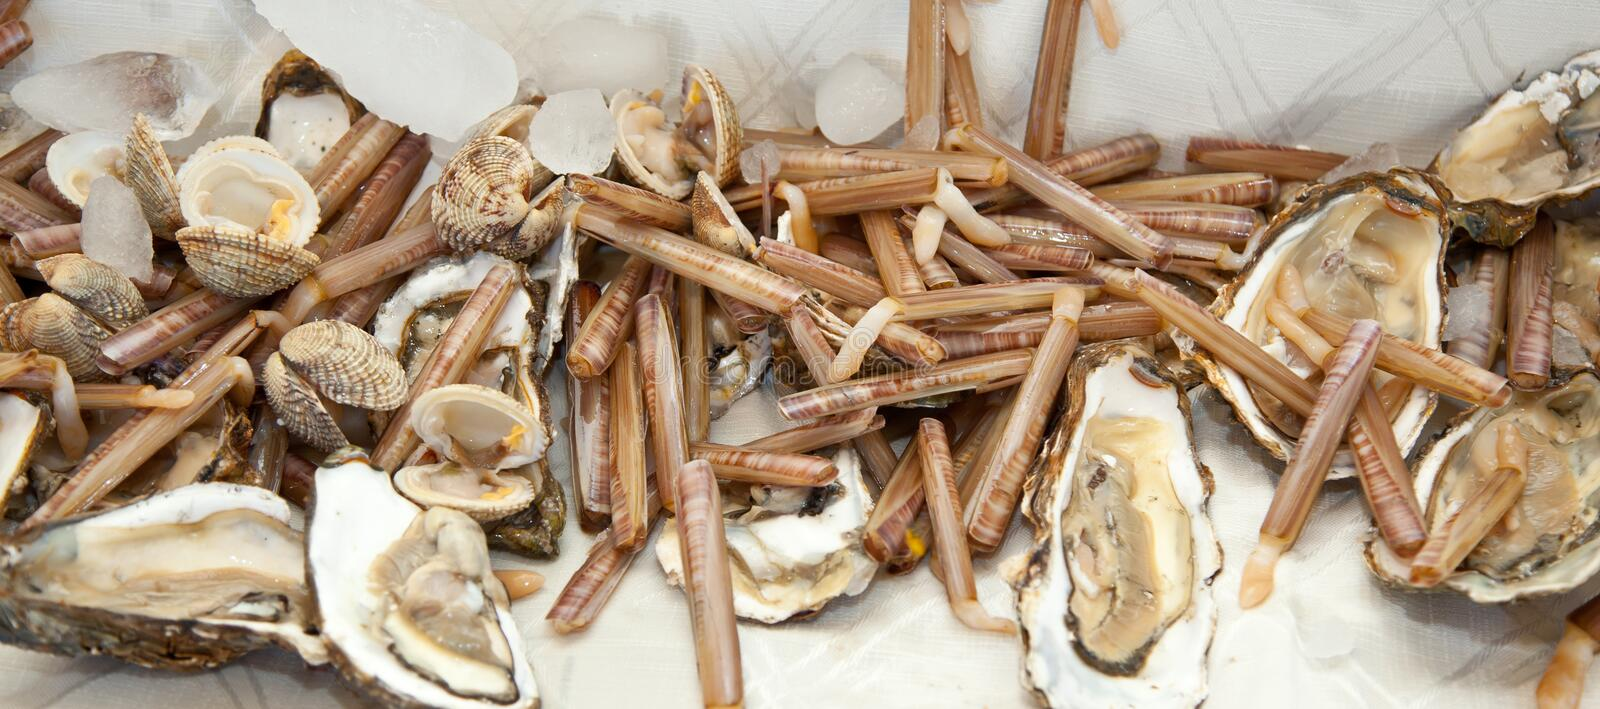 Download Razor Clams With Oysters On Ice Stock Photo - Image of animal, razor: 39508396